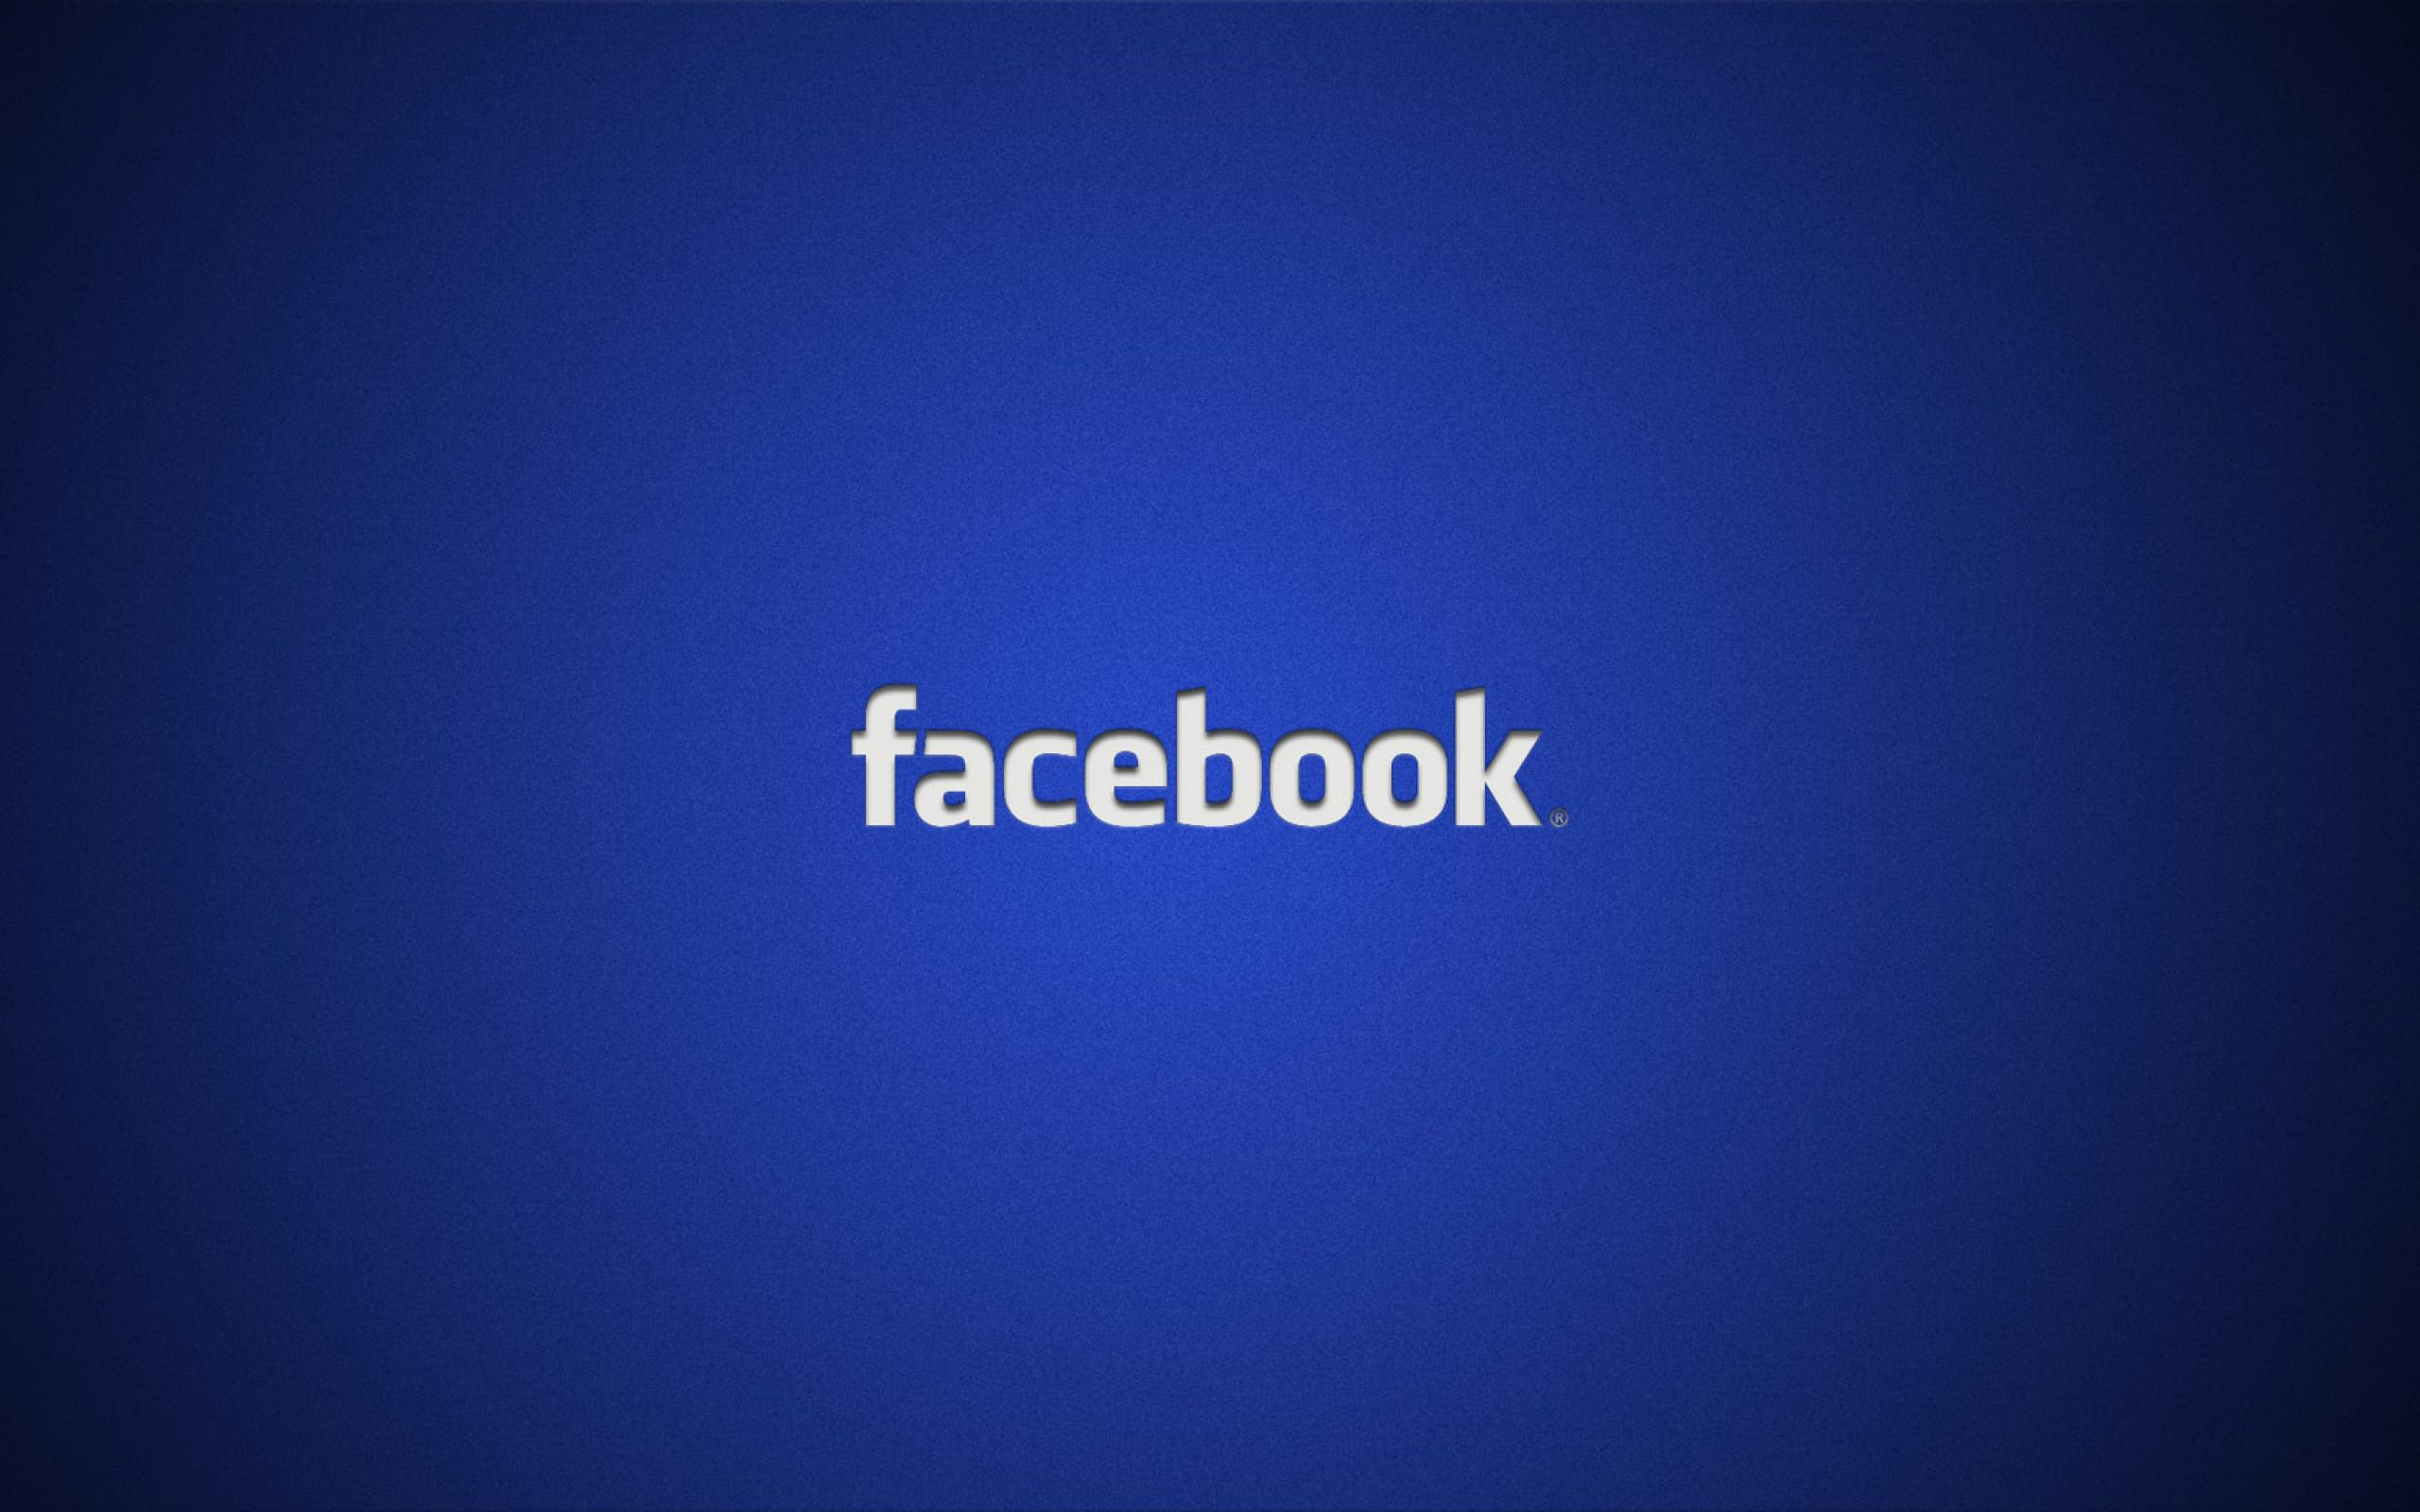 Facebook Wallpapers Backgrounds Hd 12